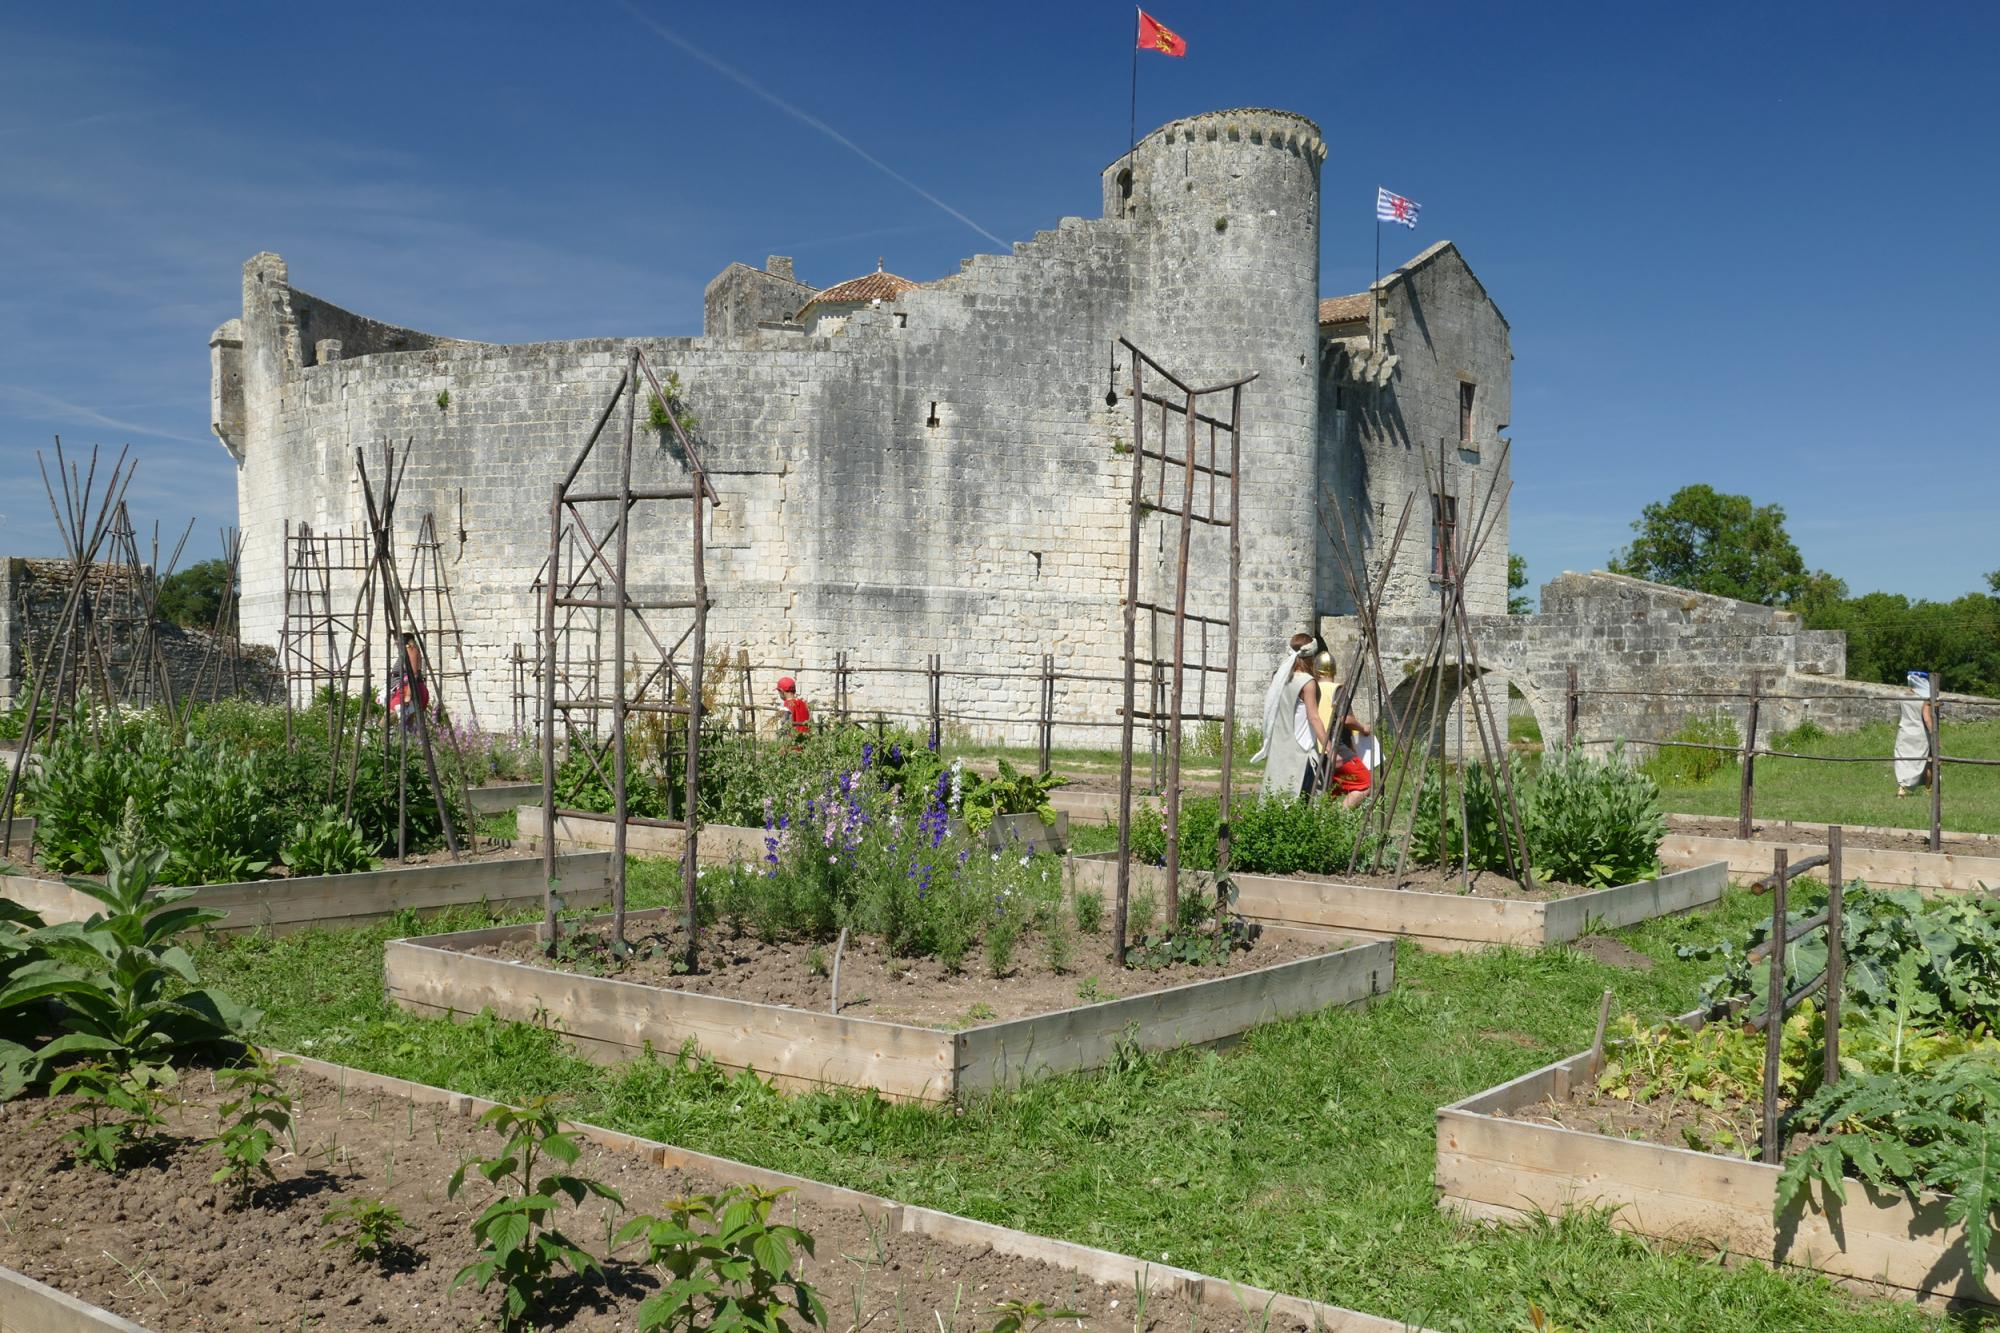 A medieval-style garden - Fortified castle and medieval theme park in Charente Maritime